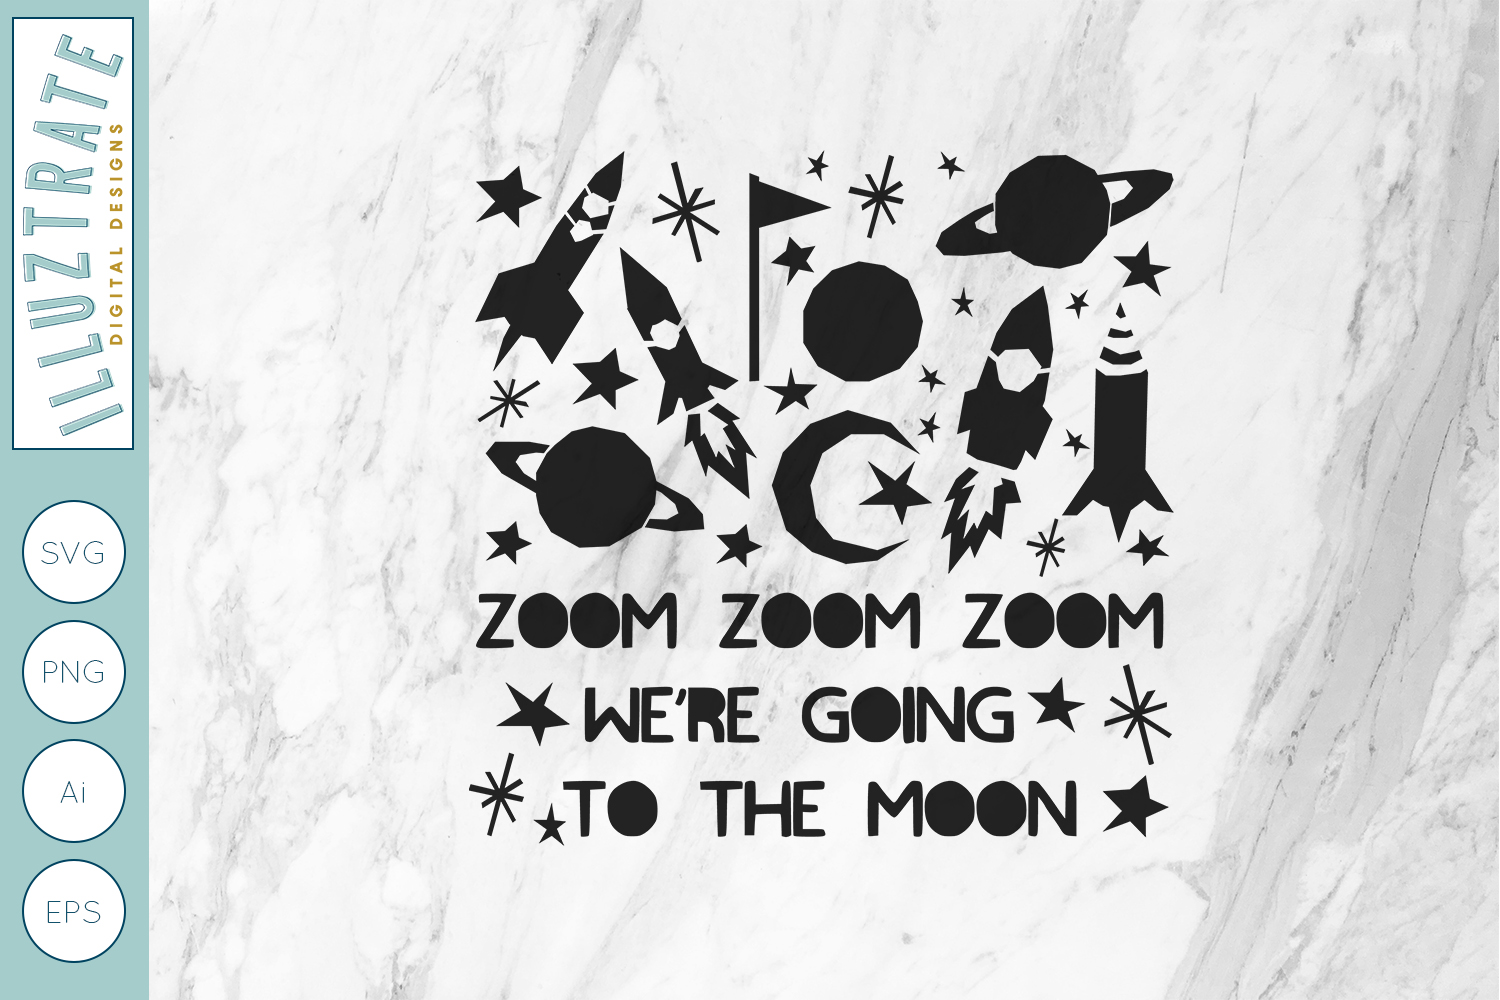 Zoom Zoom Zoom we're going to the moon SVG Cut File example image 1